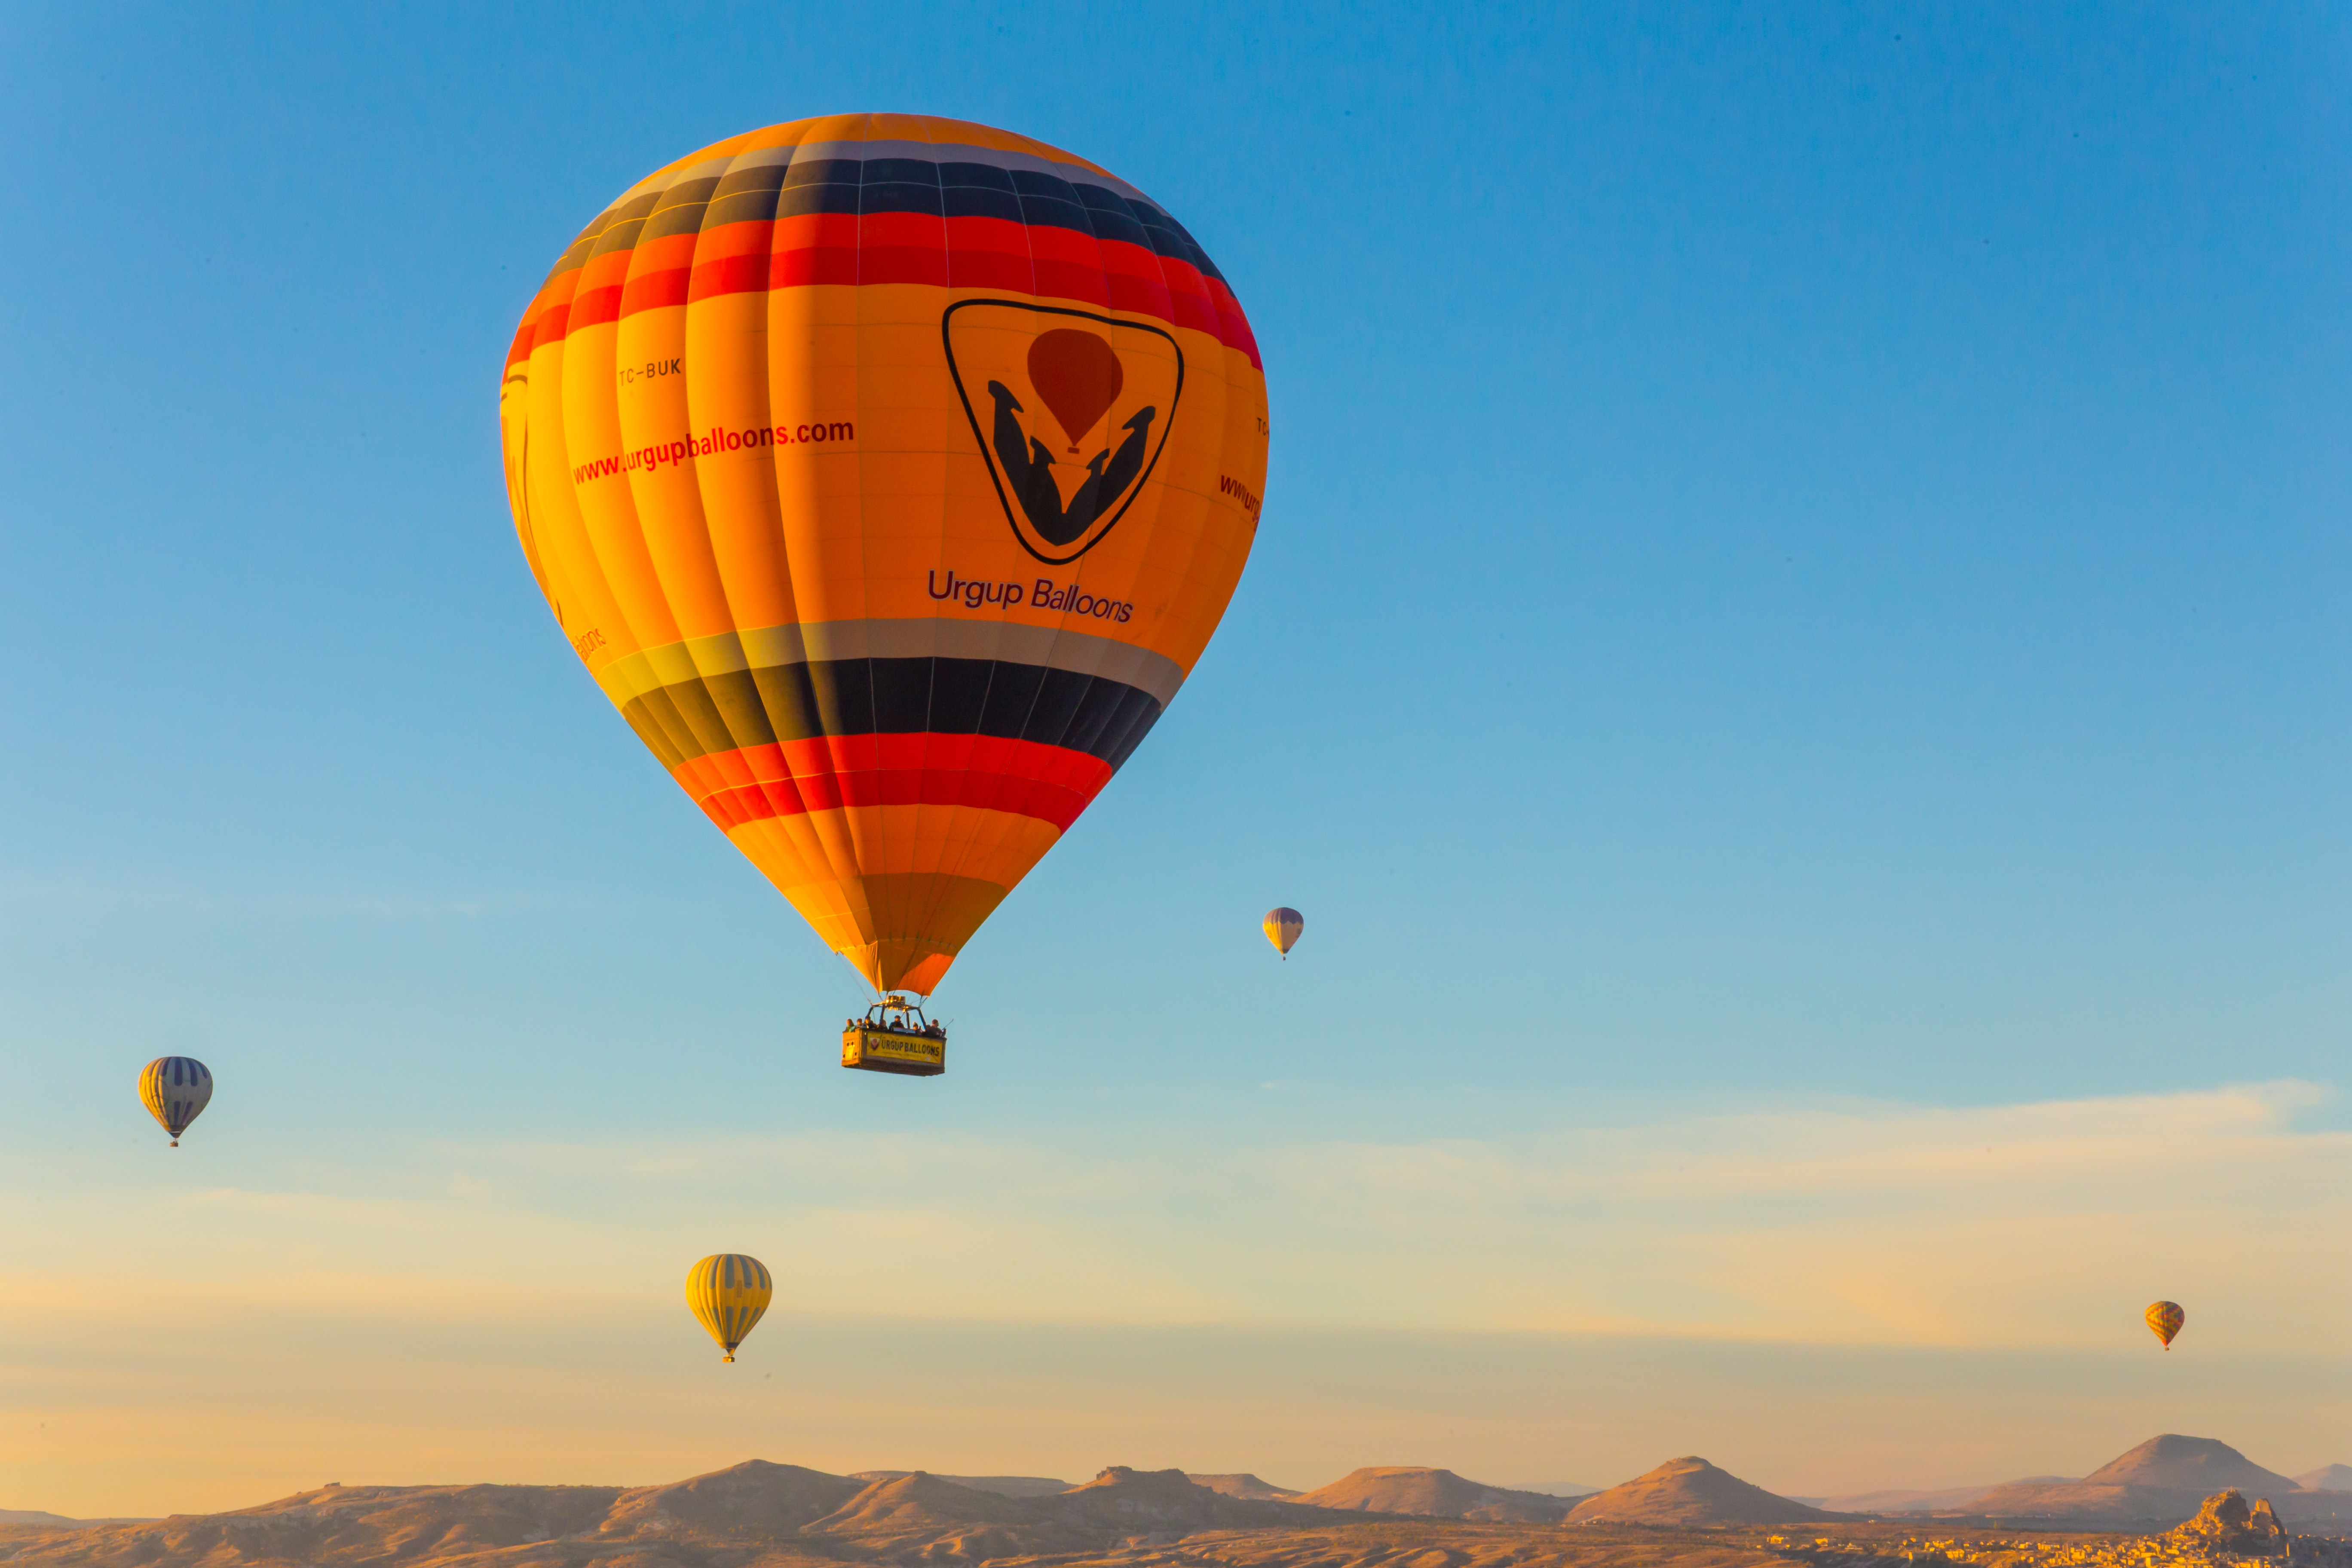 aerial photo of hot air ballooning during daytime